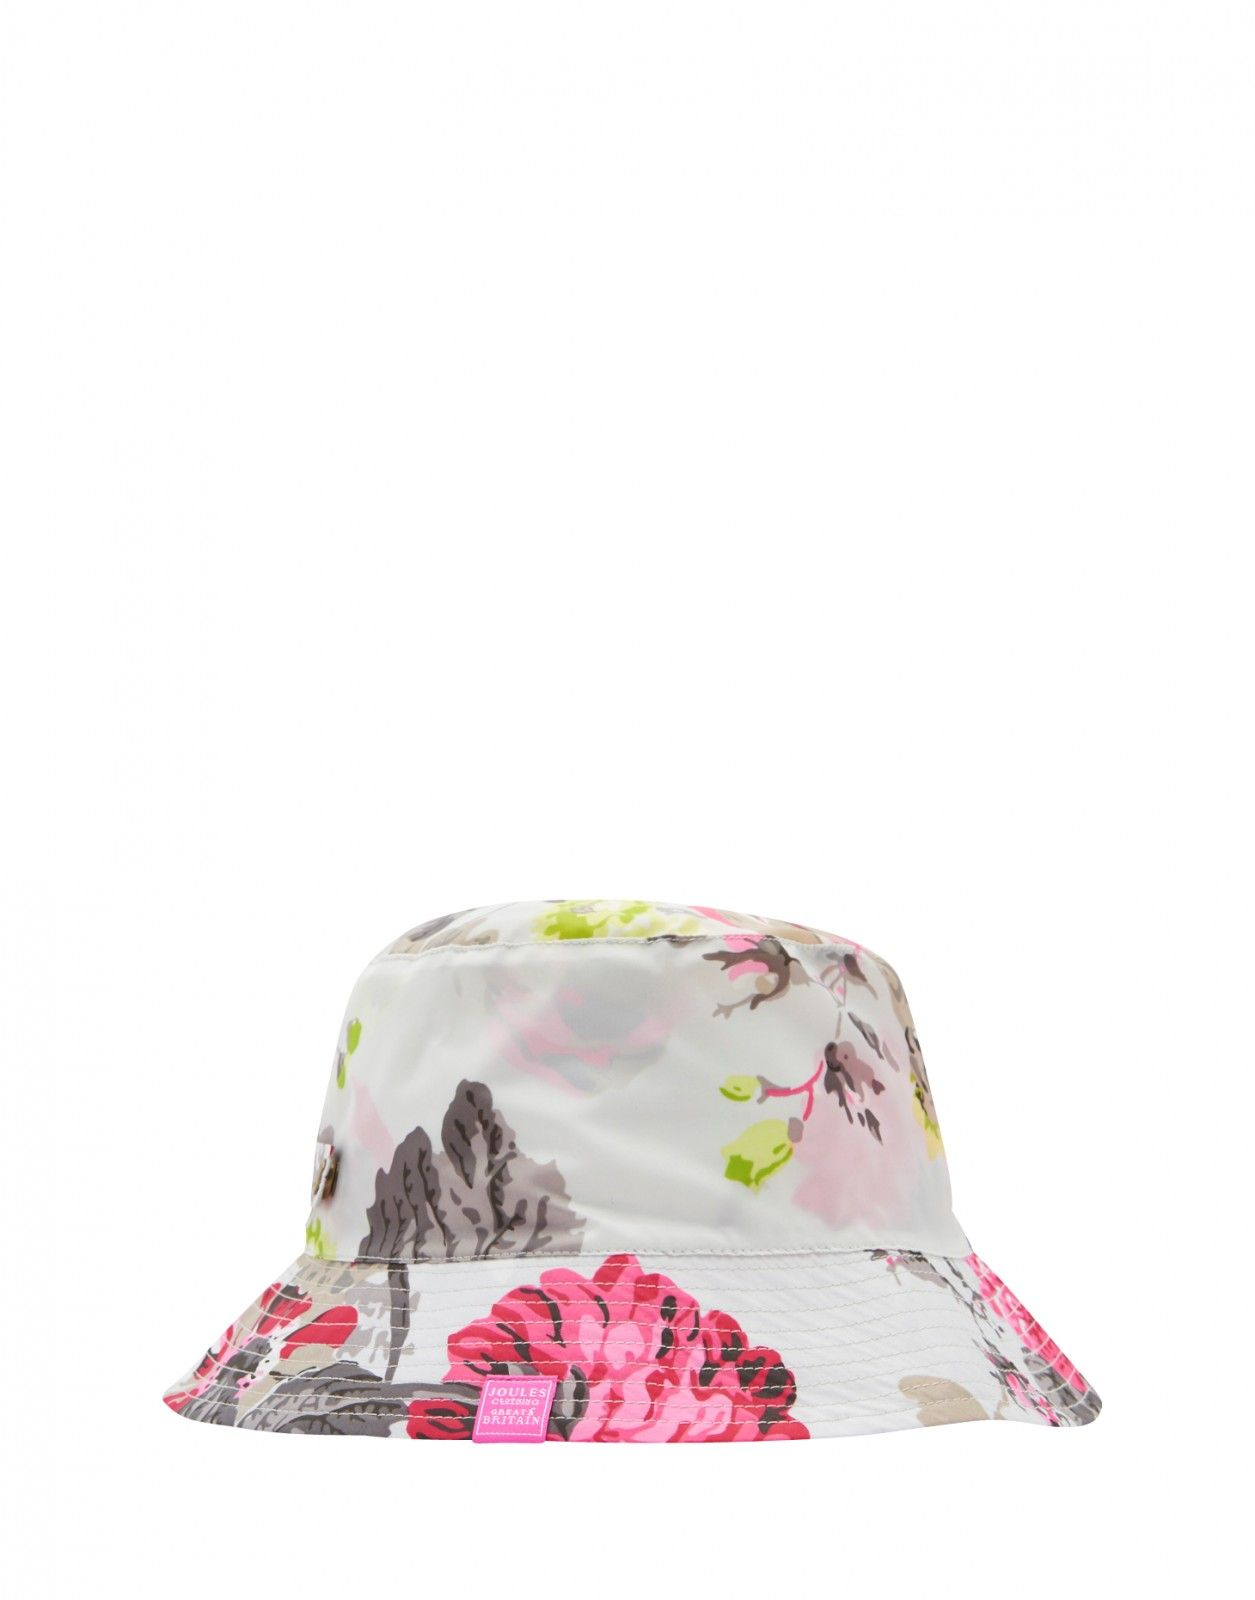 ba9725e6c74 Joules Women s Waterproof Hat available in Four Designs - Anna Davies